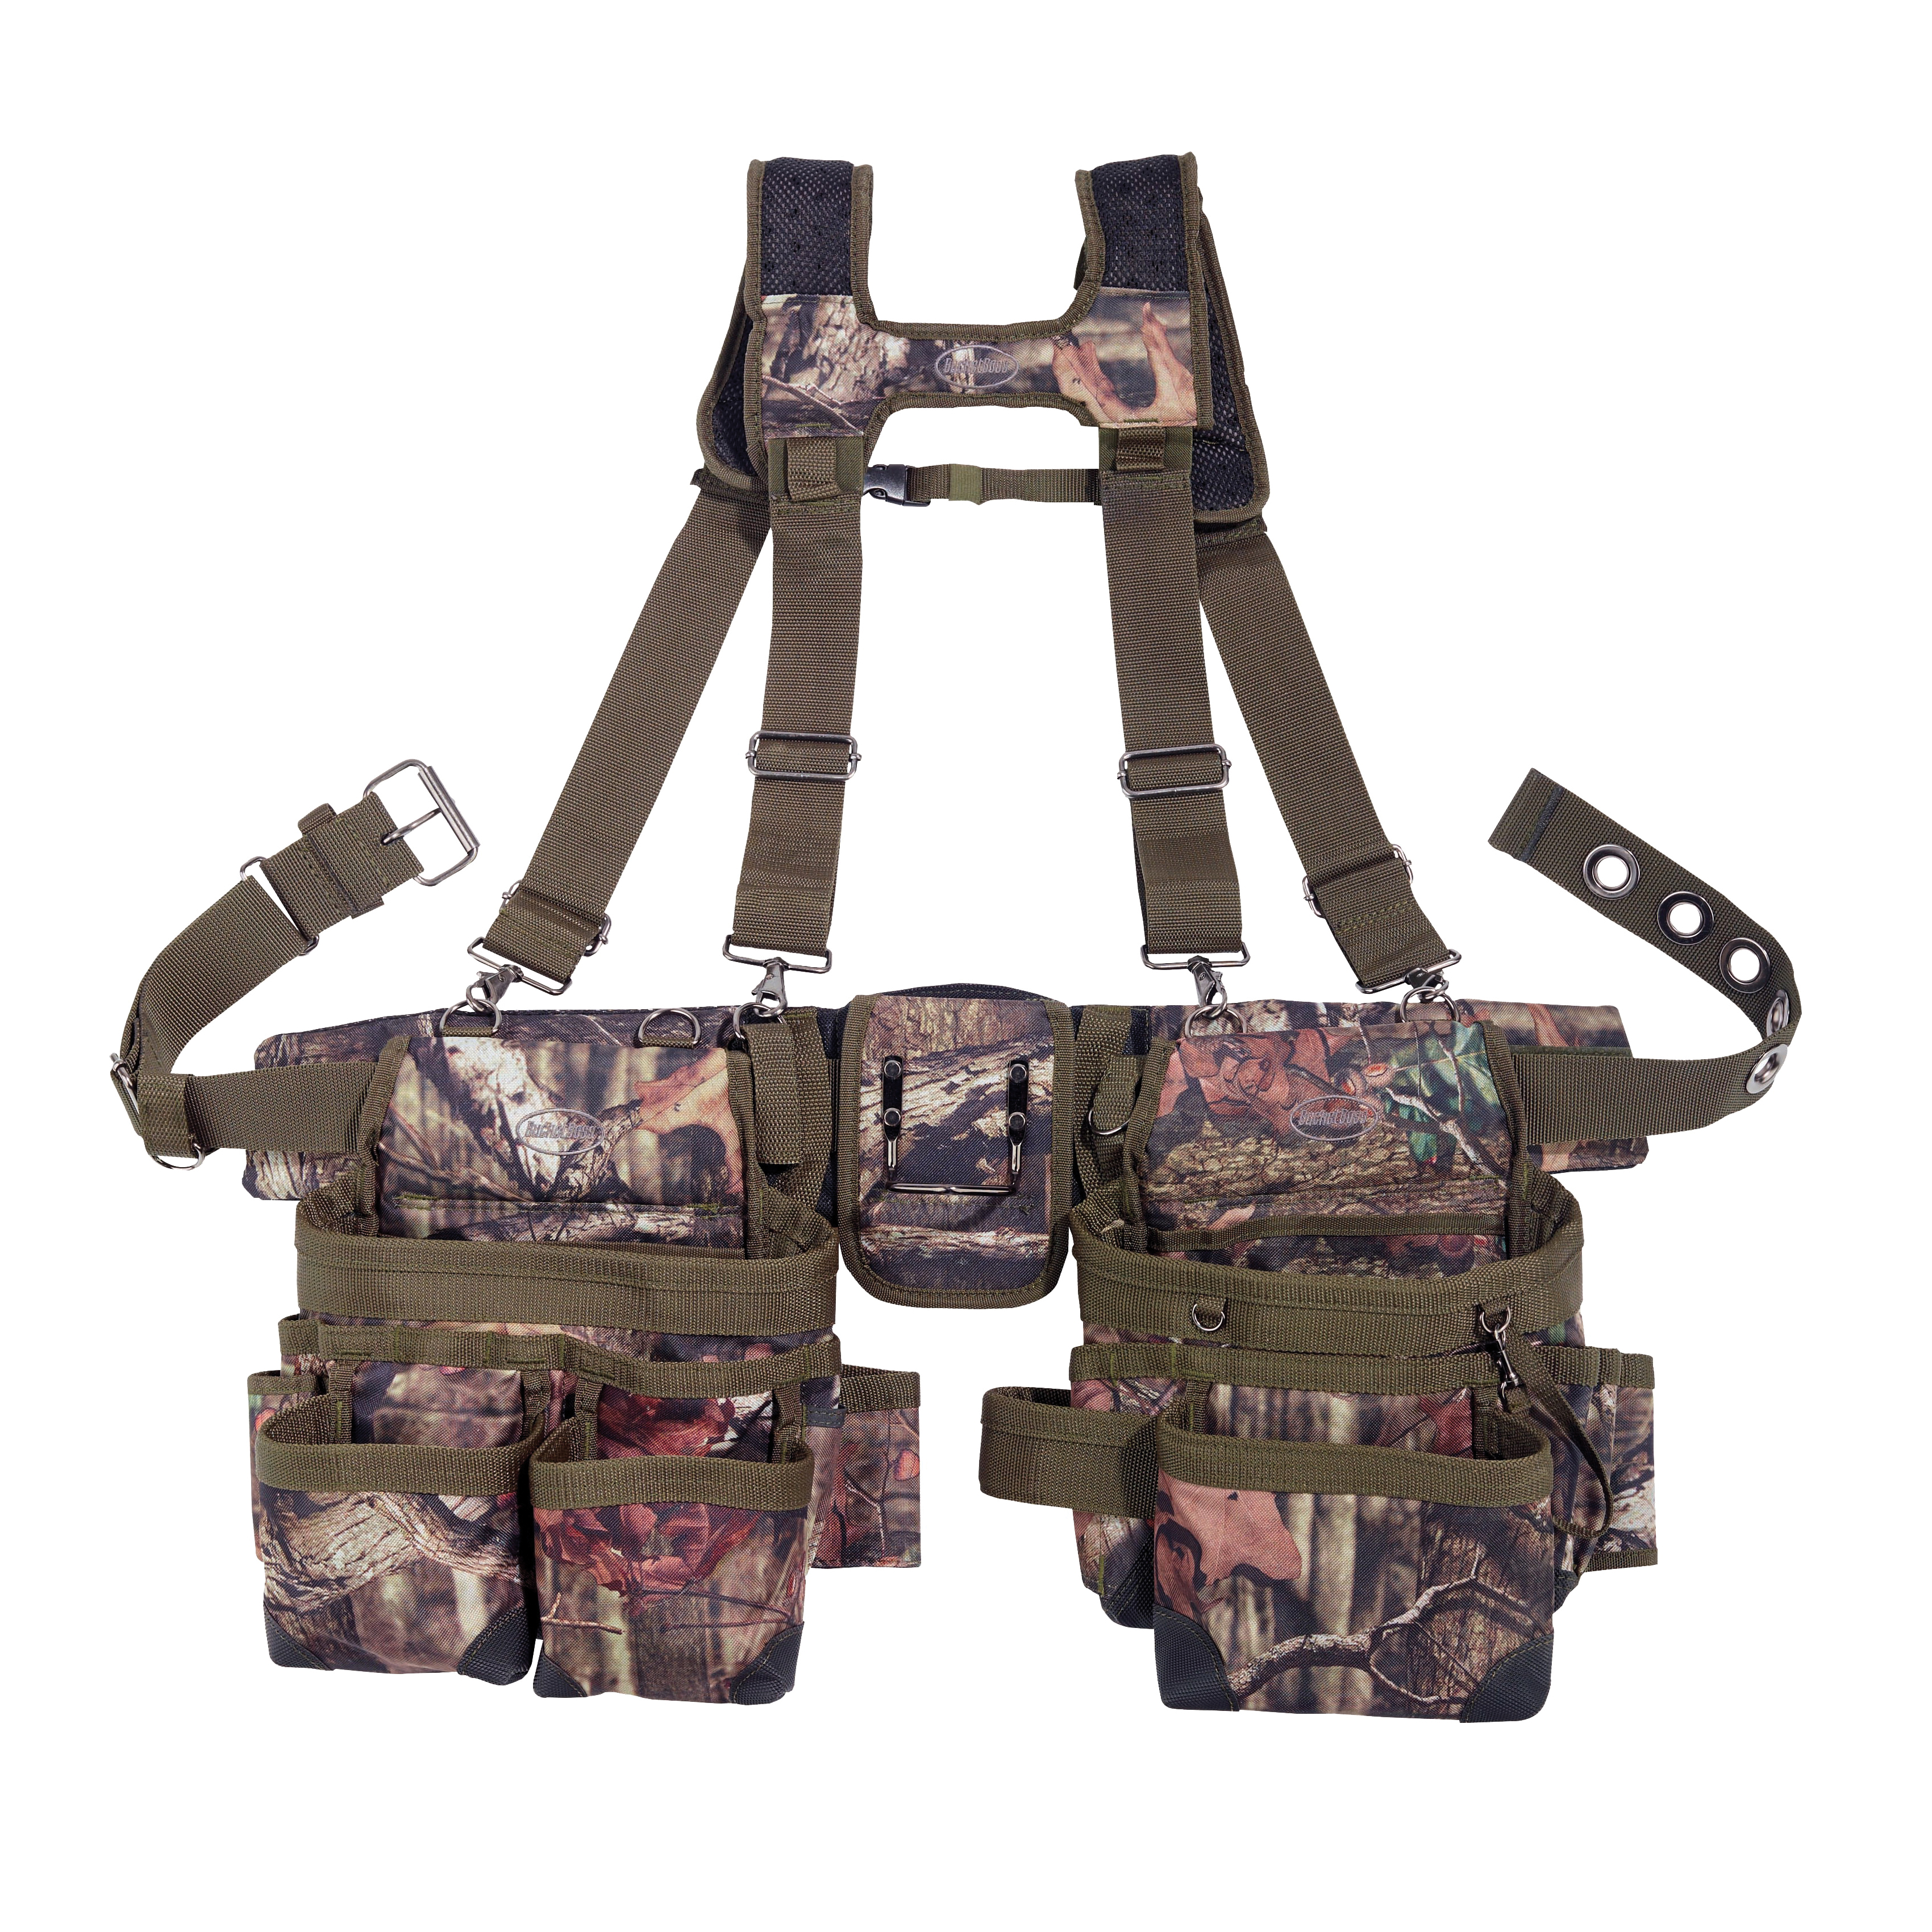 Picture of Bucket Boss 85035 Suspension Rig, 52 in Waist, Fabric, Mossy Oak, 28 -Pocket